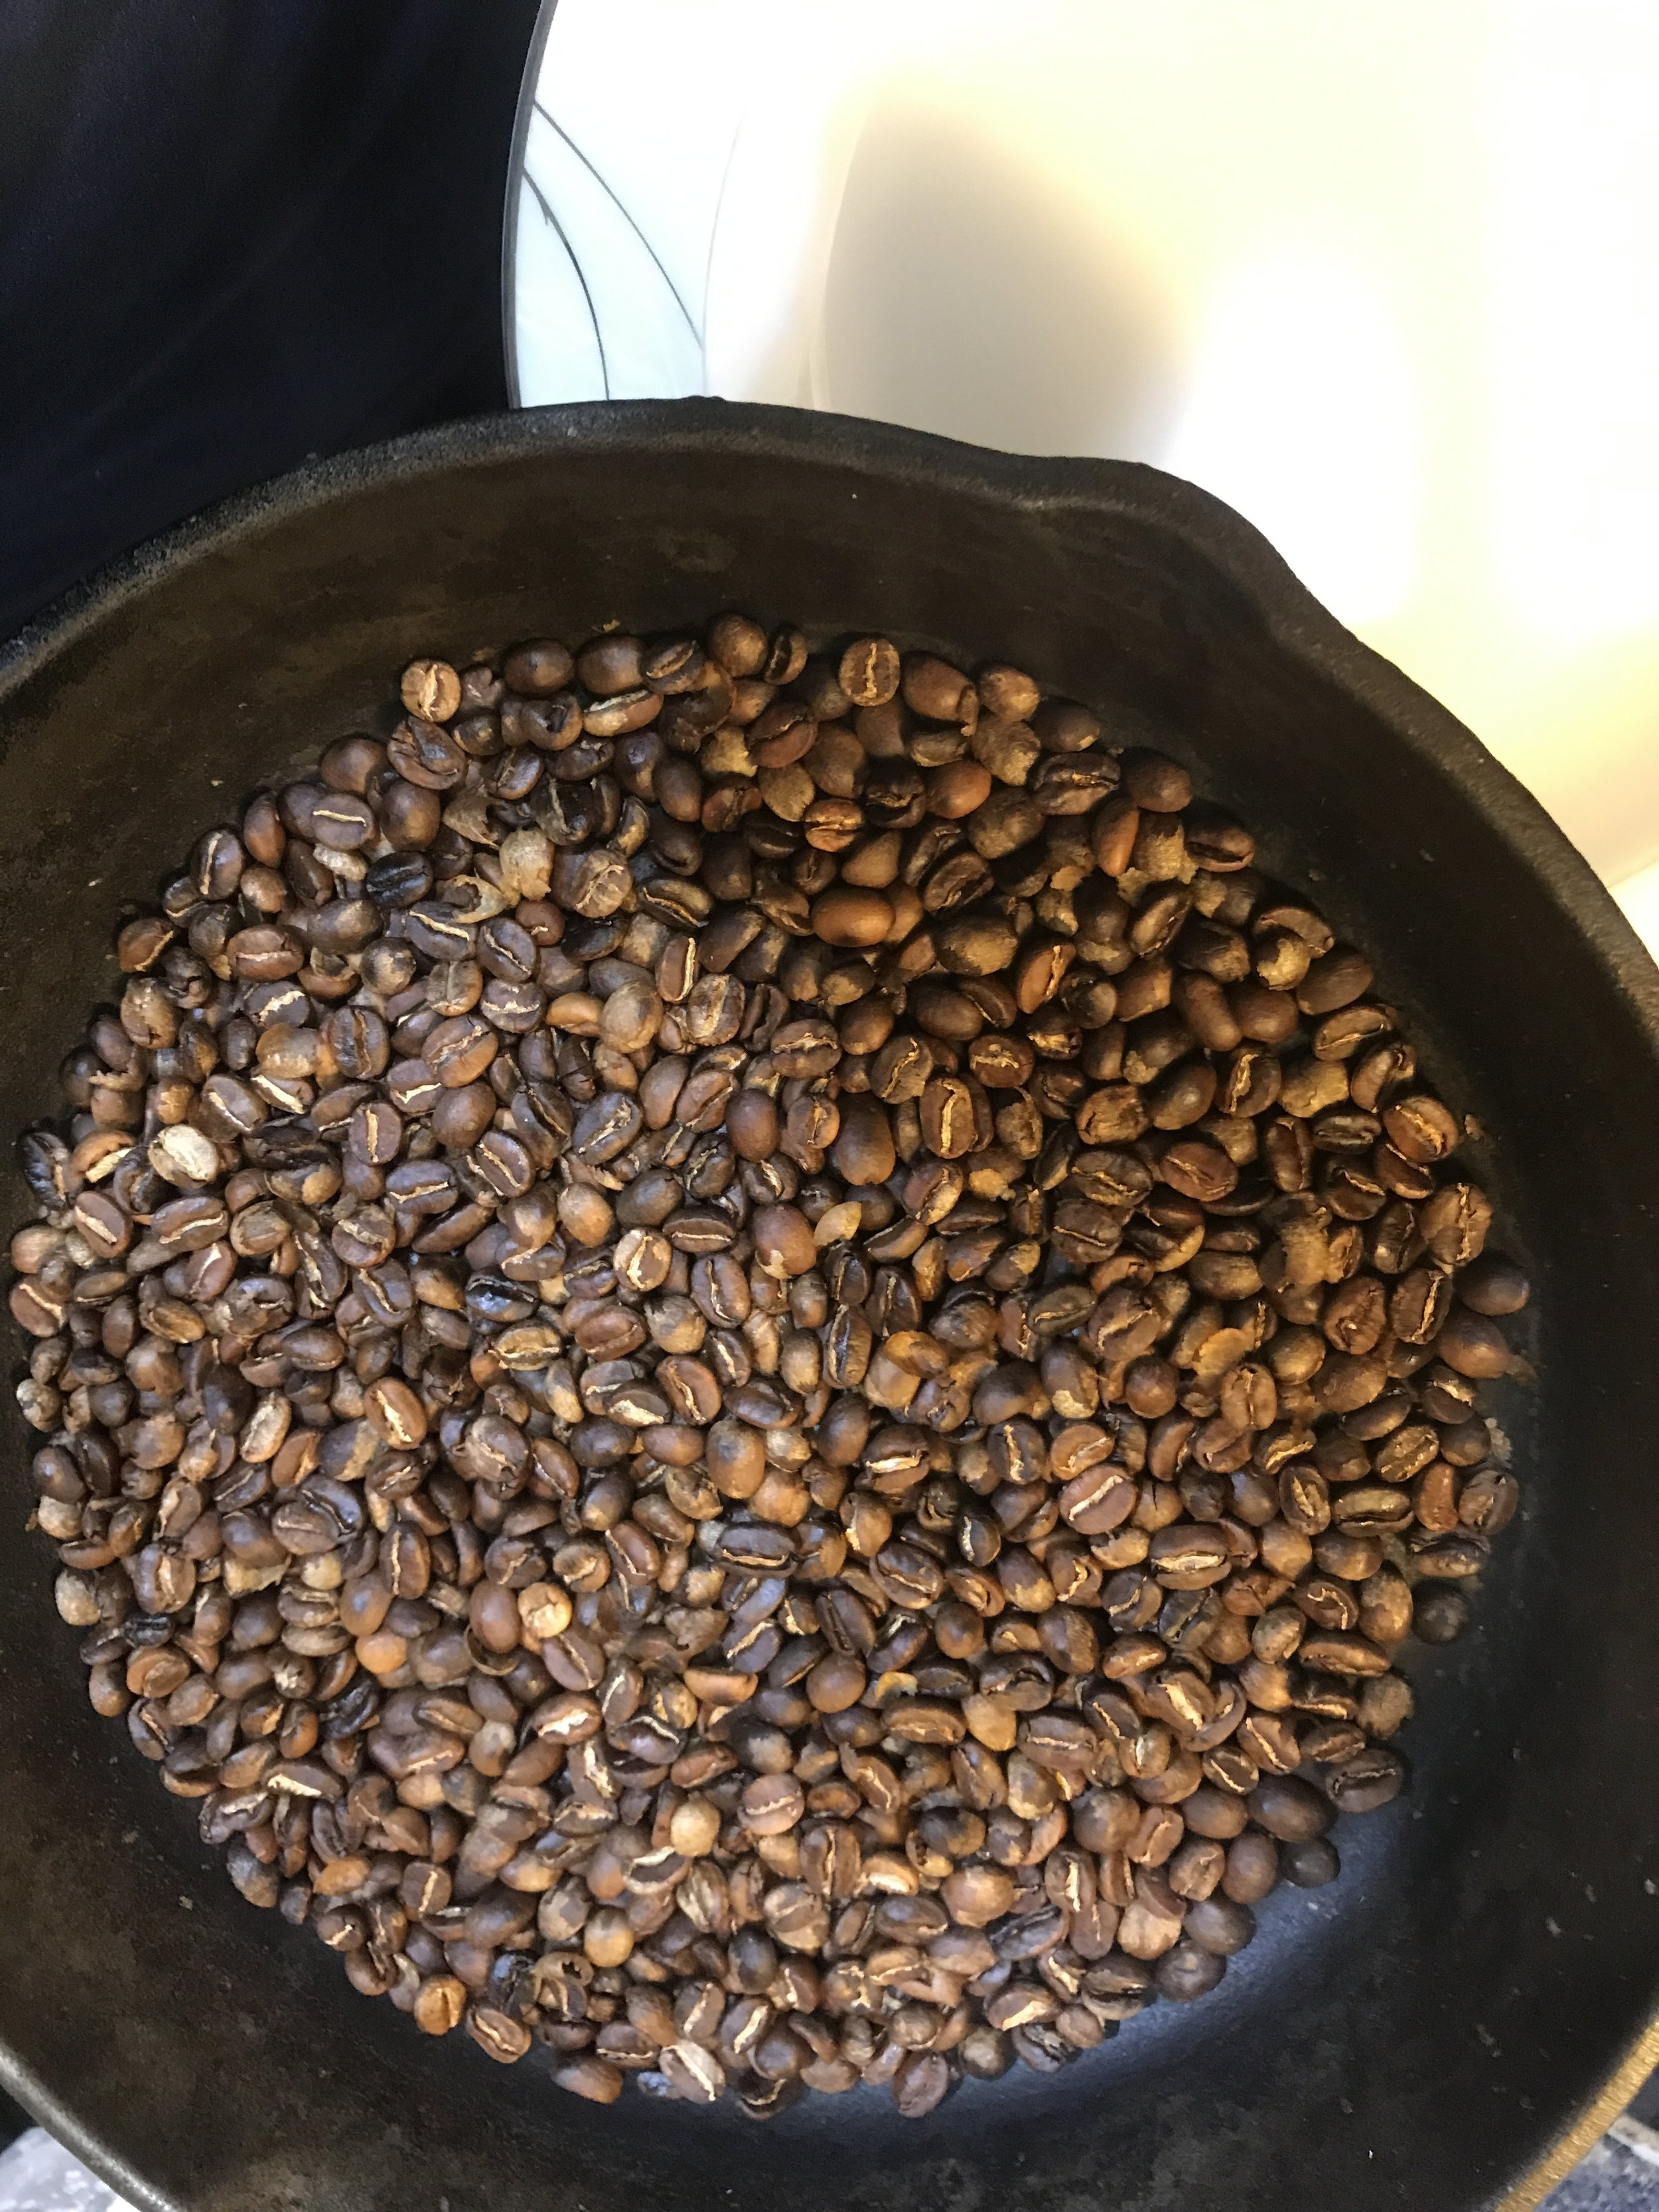 Our roasted coffee beans got us through Hurricane Irma, along with a little help from our friends!